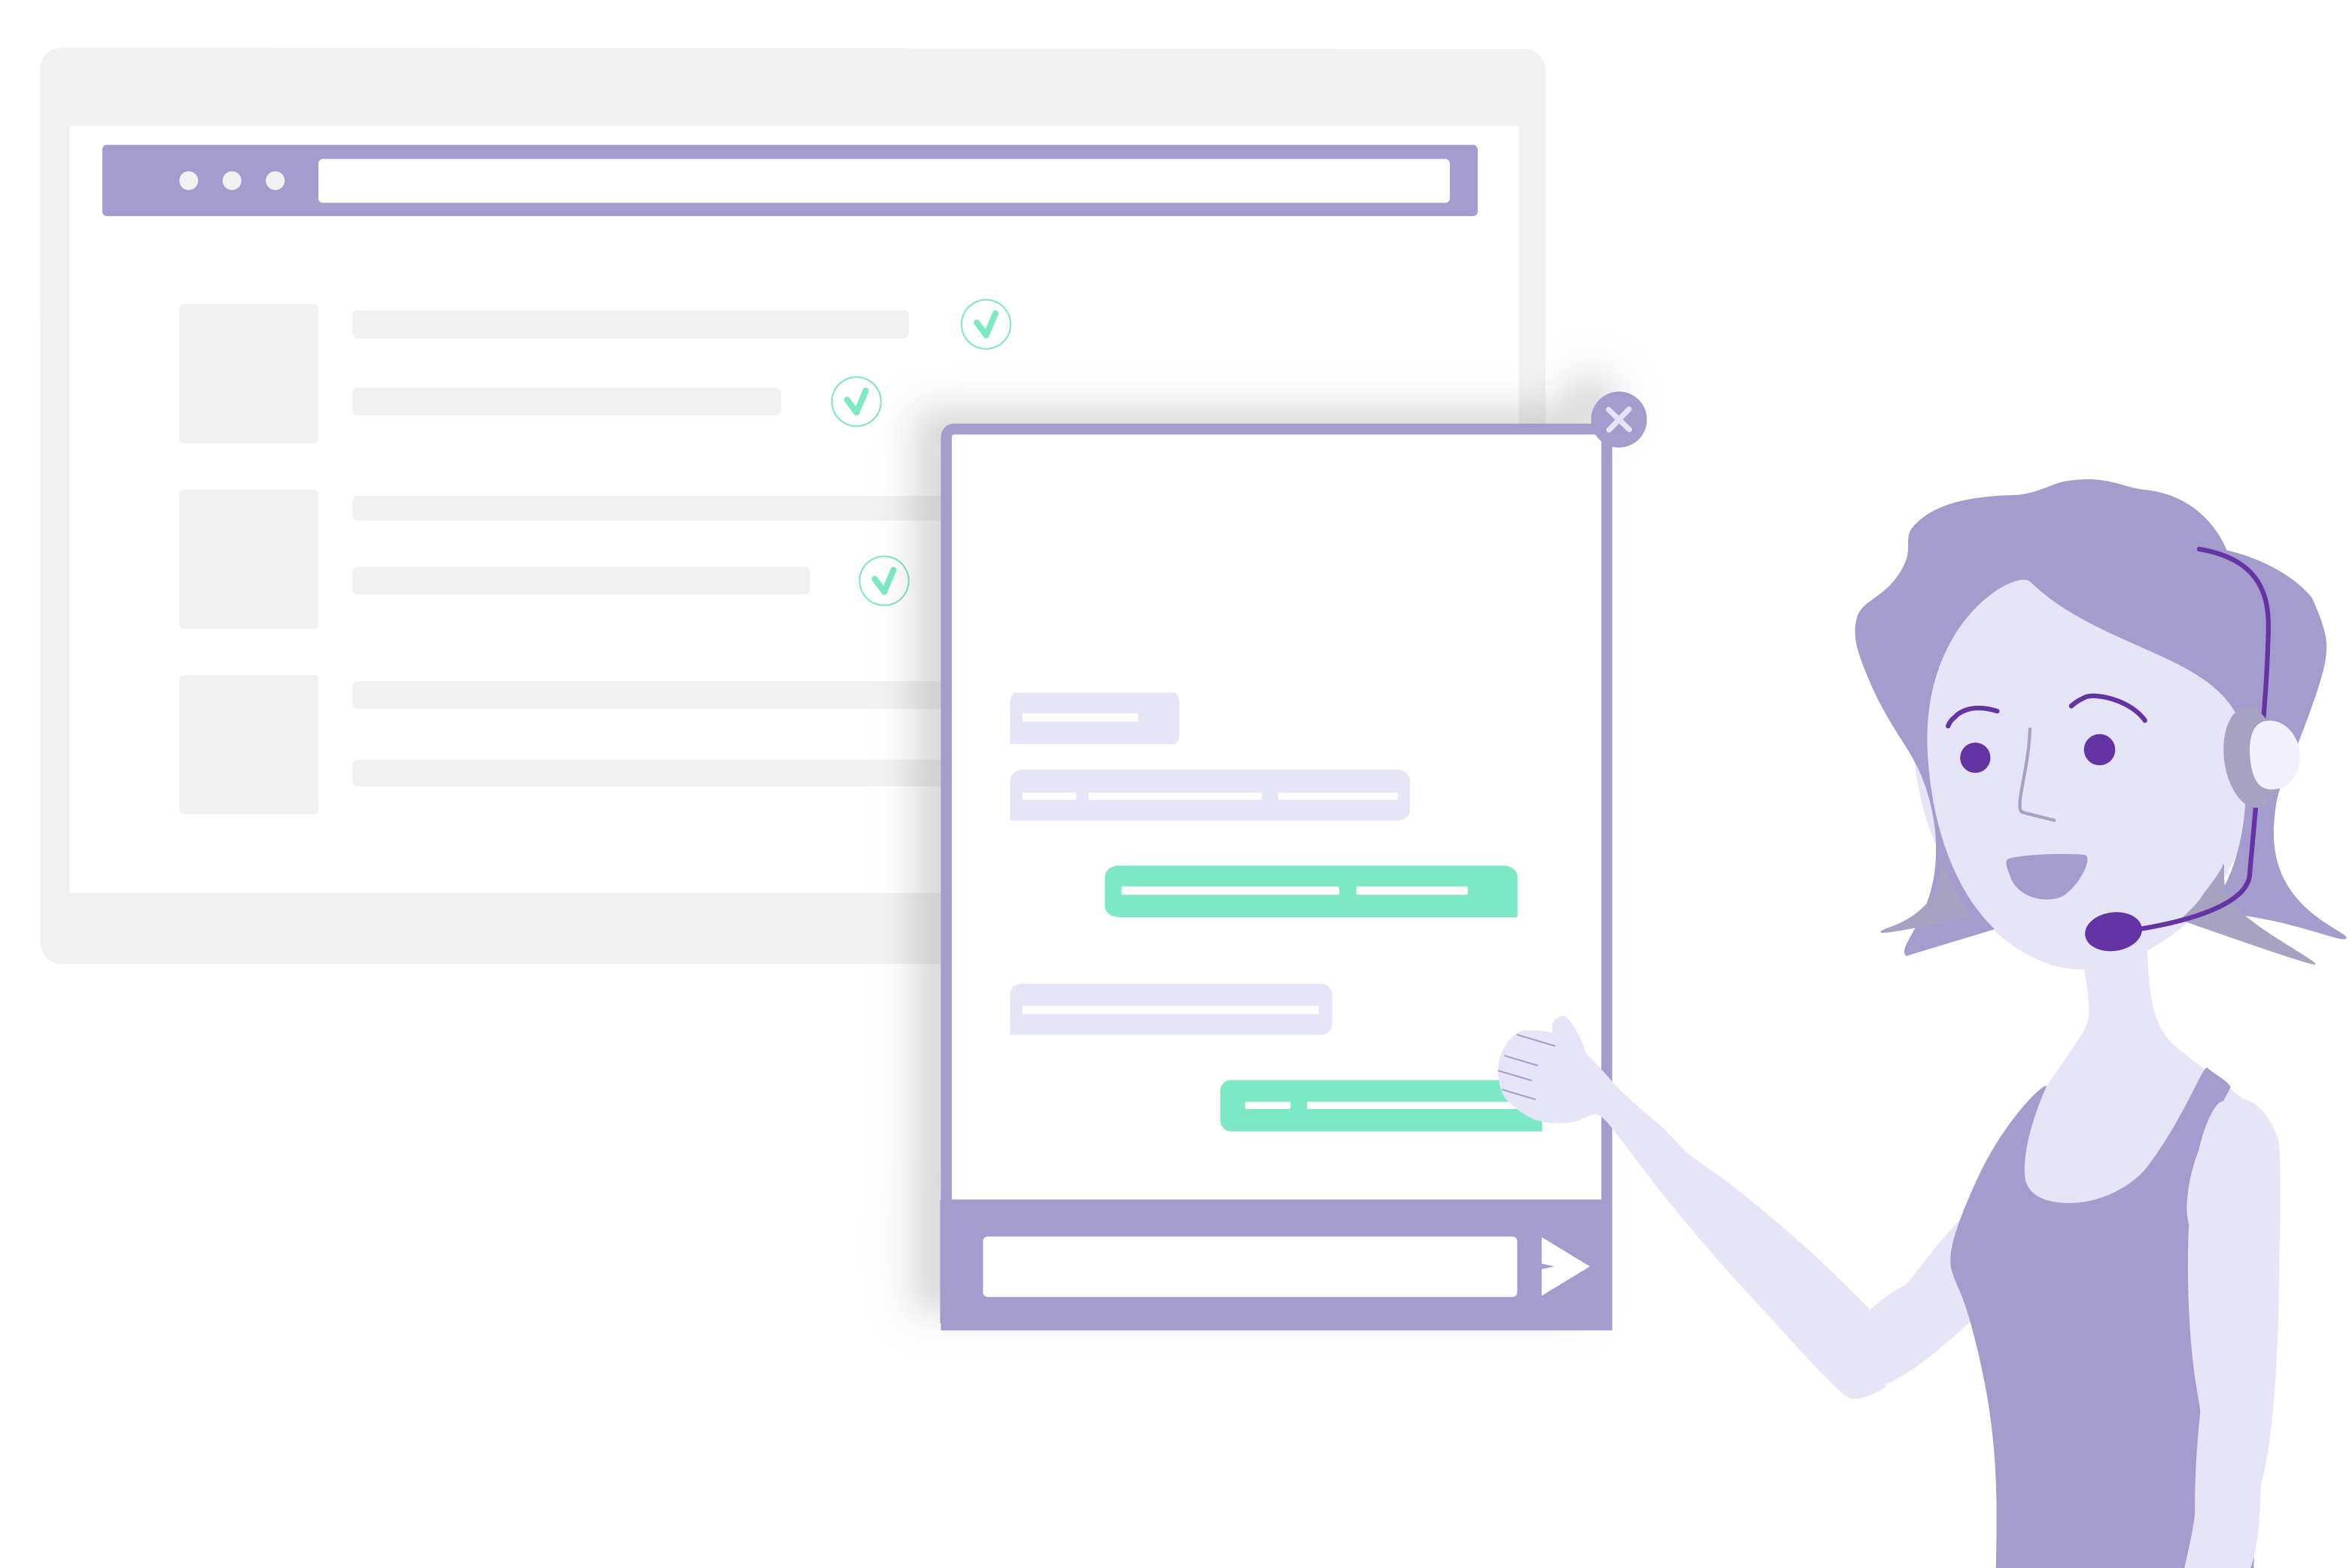 Connect agents to customers who need them most with JennyBot - Customer Service Chatbots by GetJenny